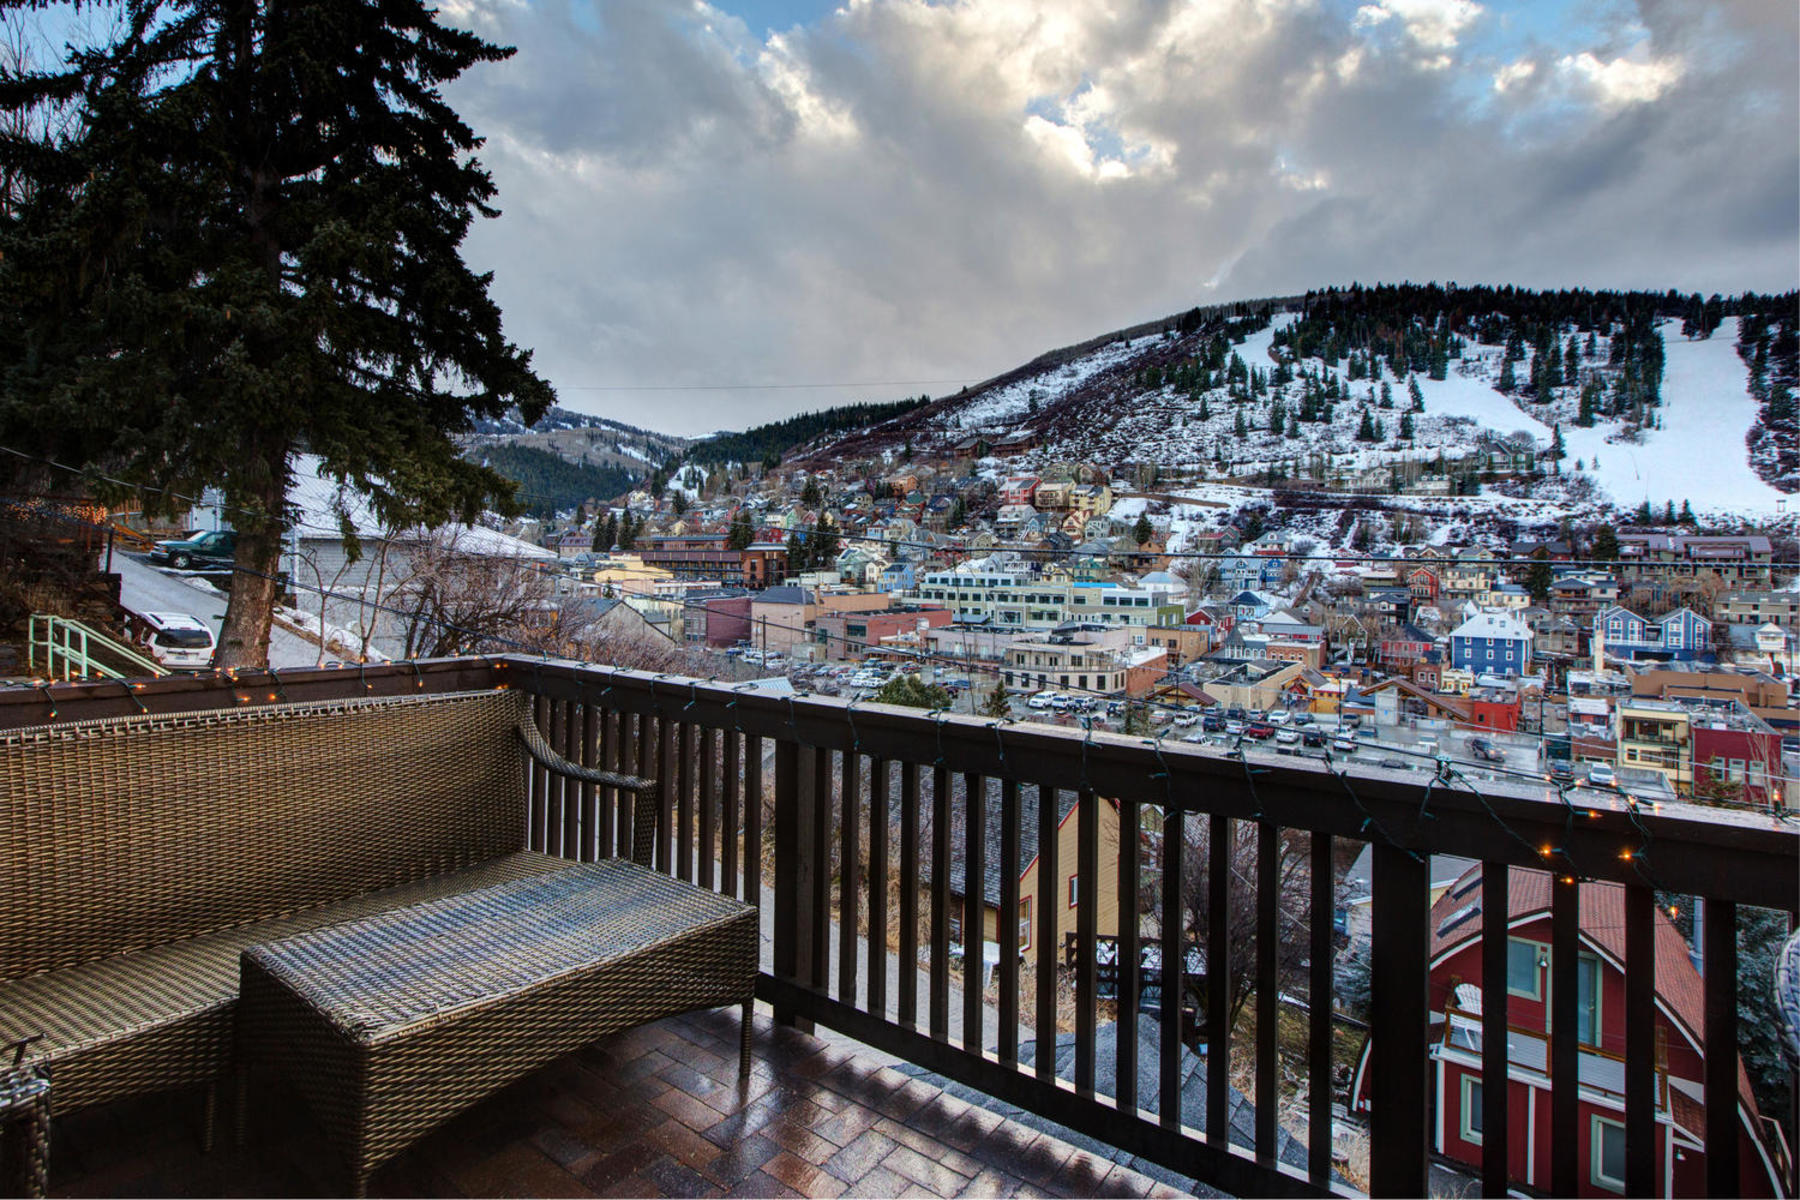 Single Family Home for Sale at Beautifully Appointed with Ski Run Views 428 Ontario Ave Park City, Utah, 84060 United States